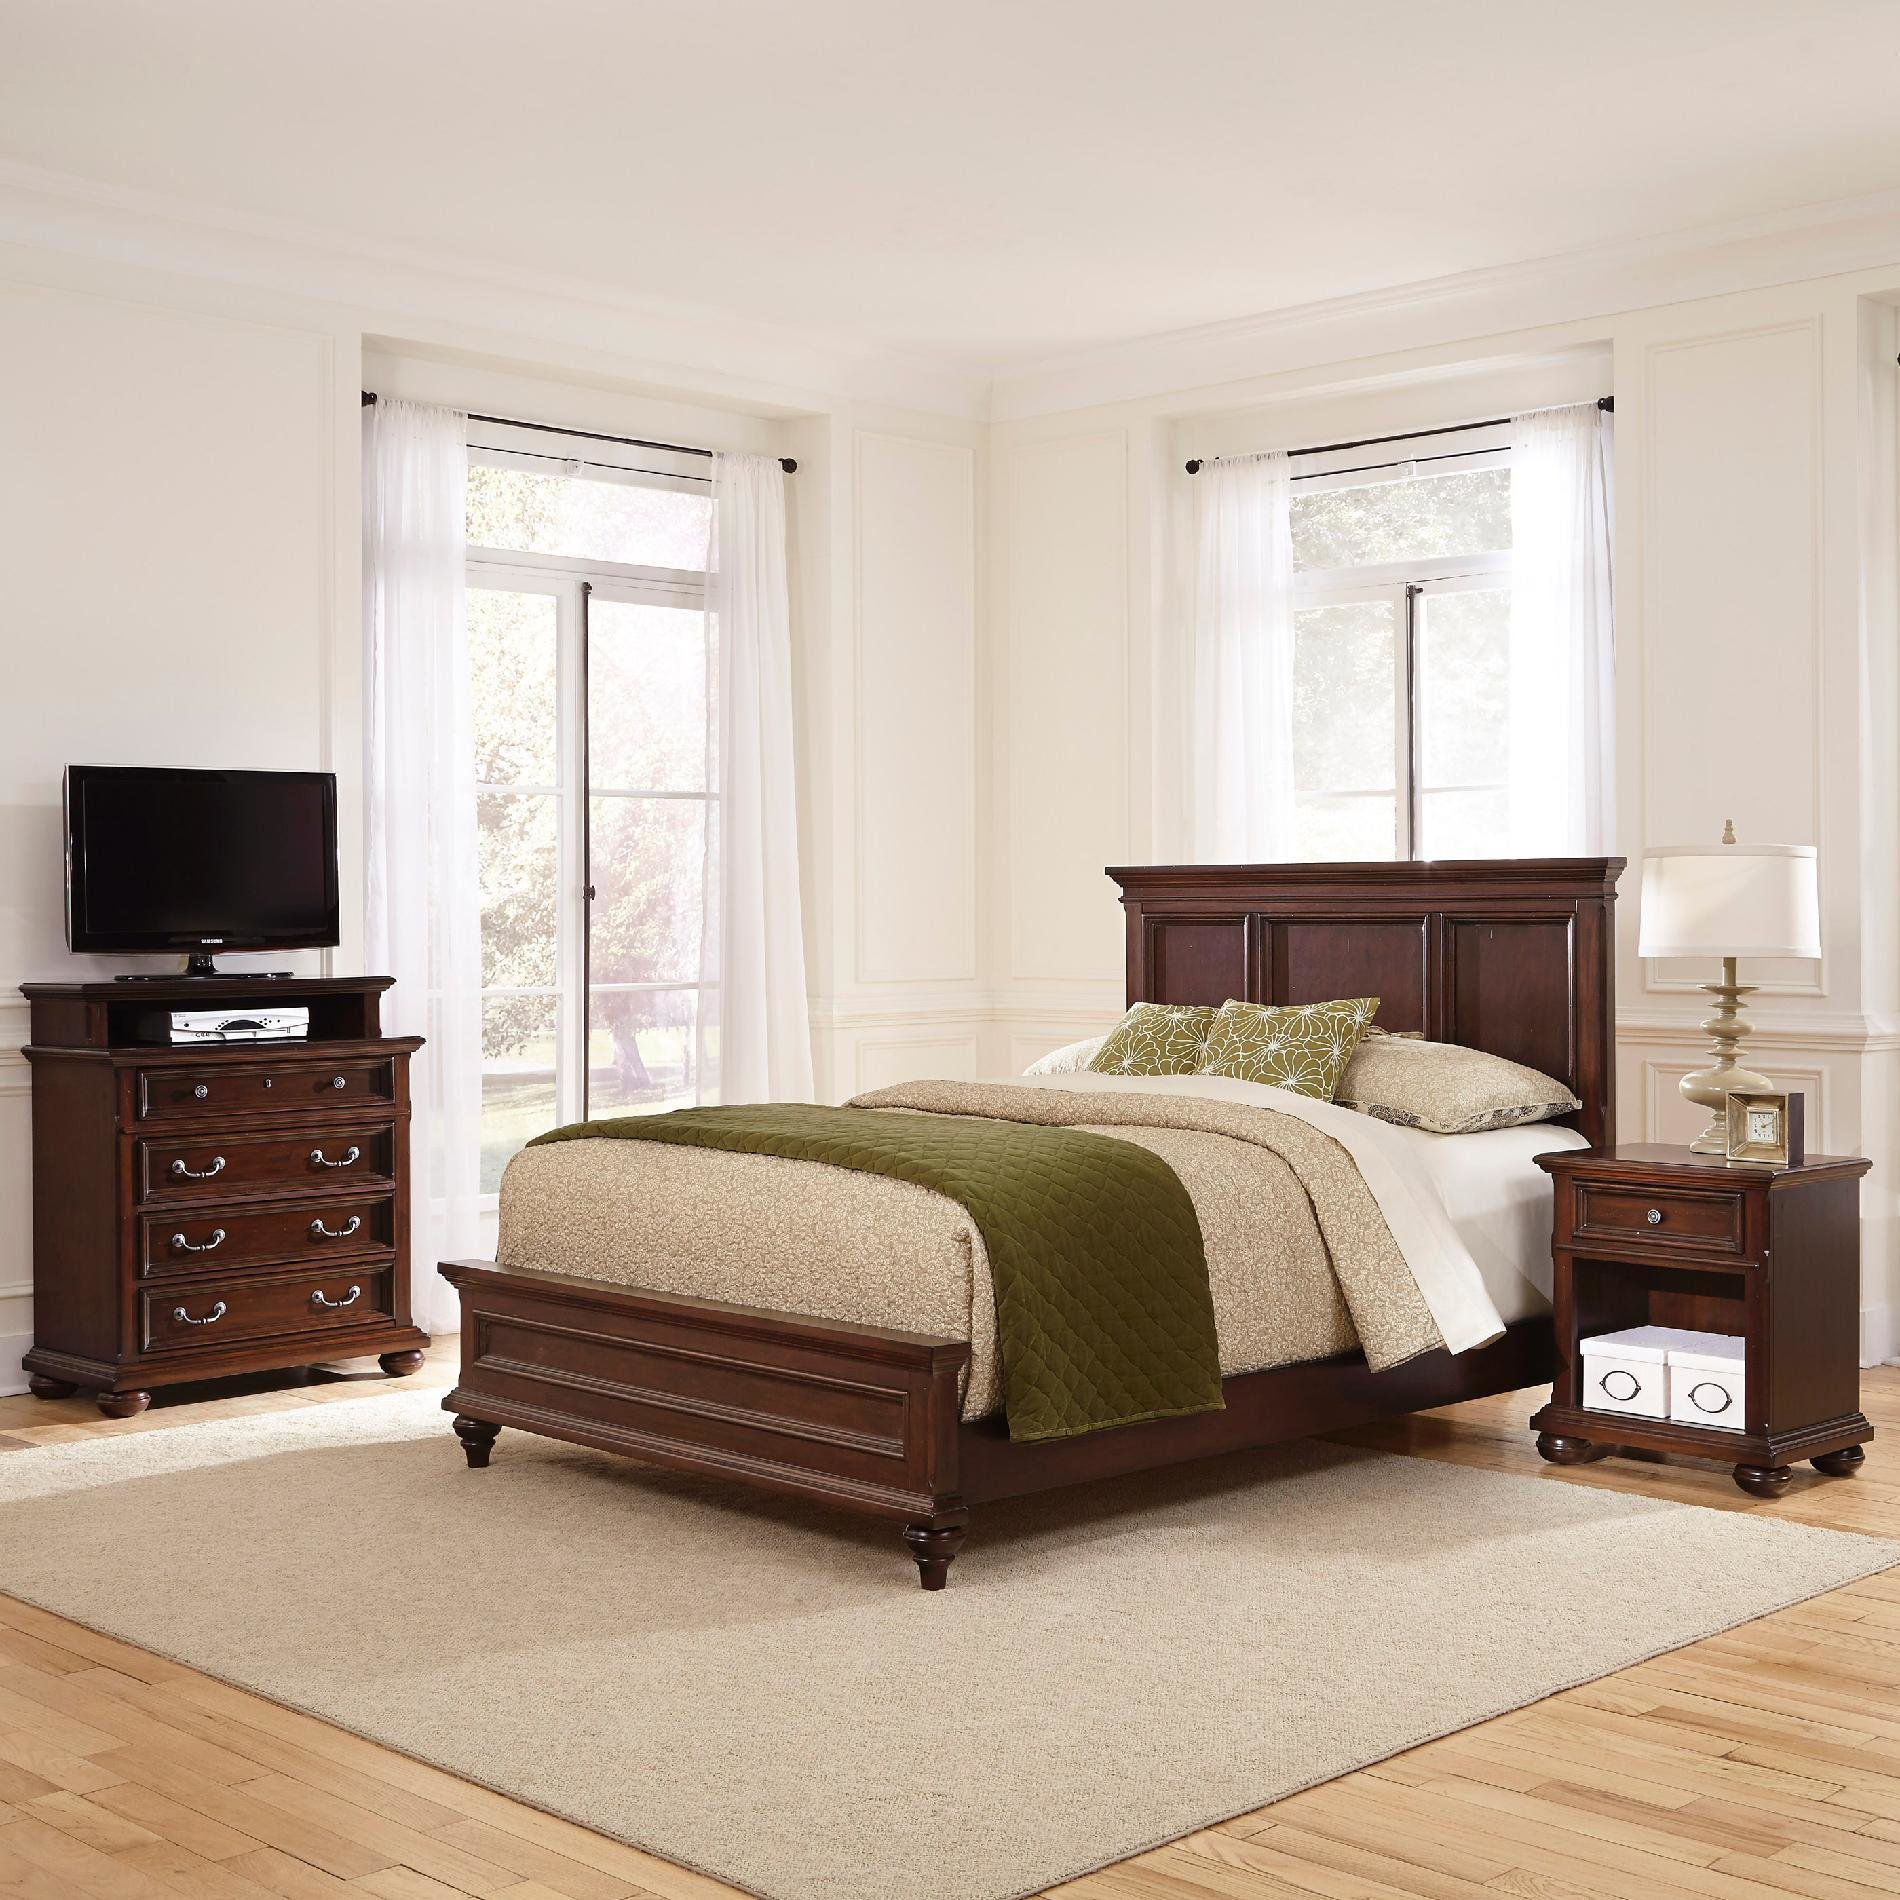 Best Home Styles Colonial Classic Queen Bed Night Stand And With Pictures